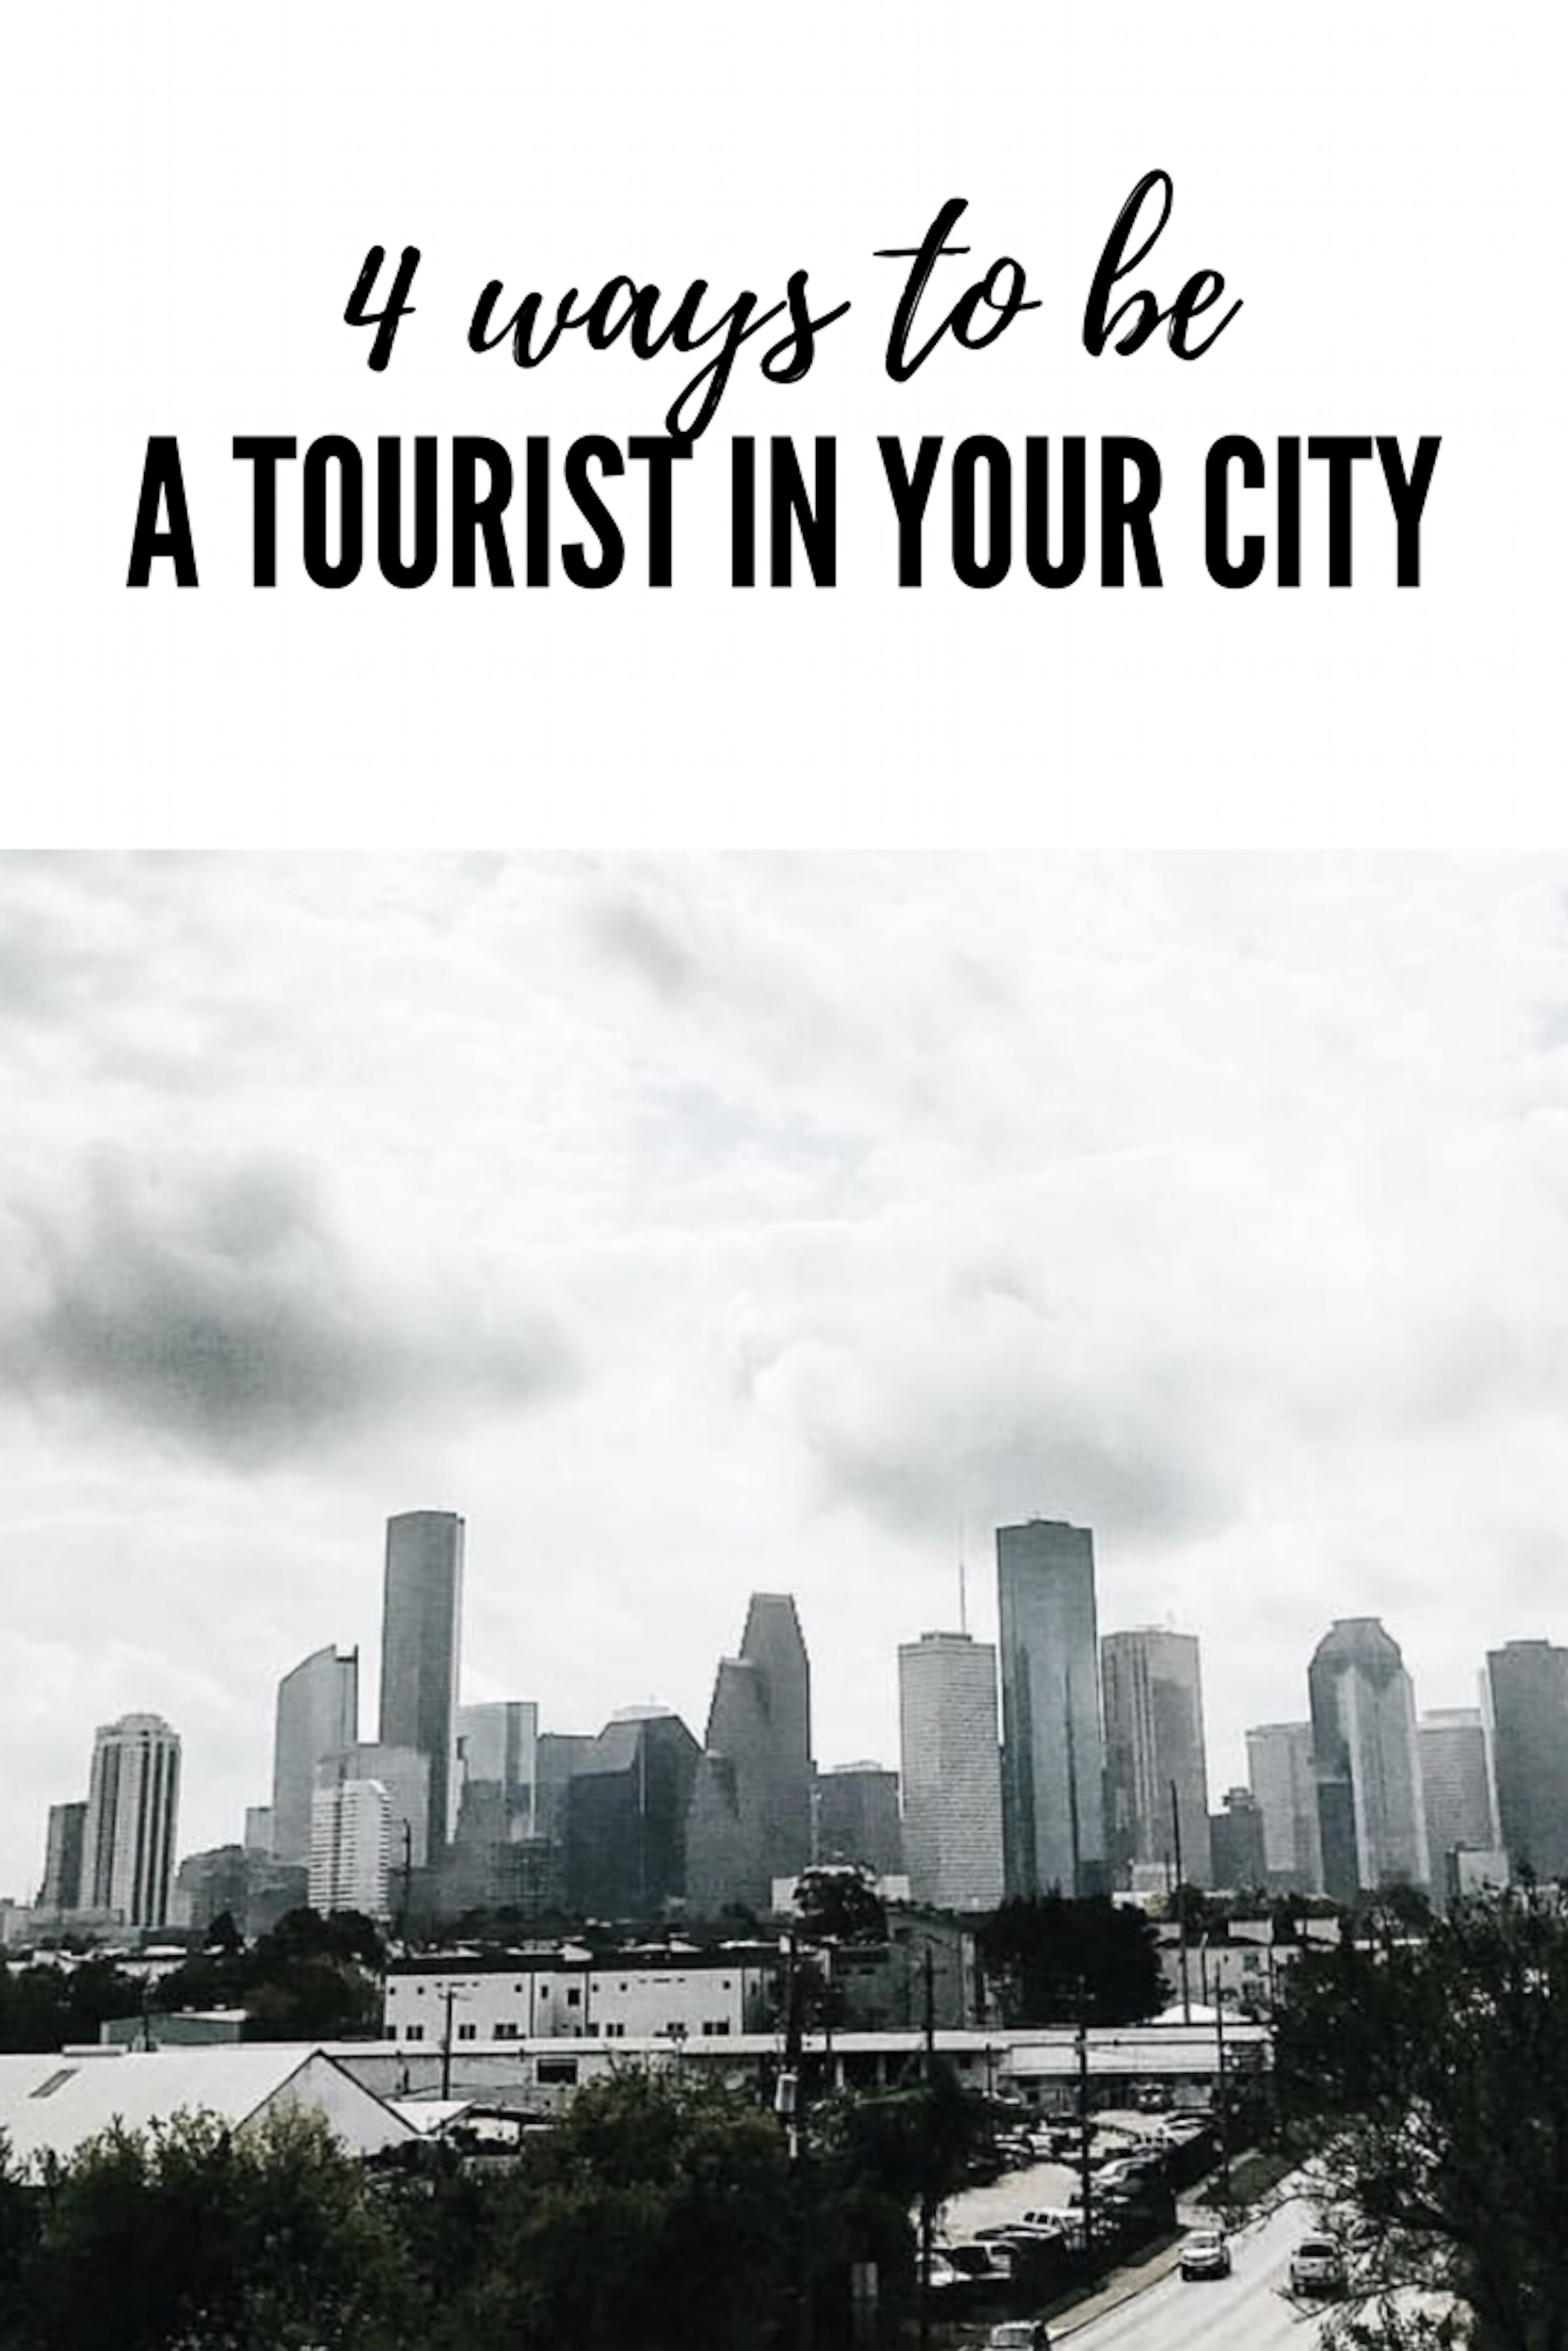 travel, traveling, travel tips, travel blogger, travel destinations, tourist, tourist attractions